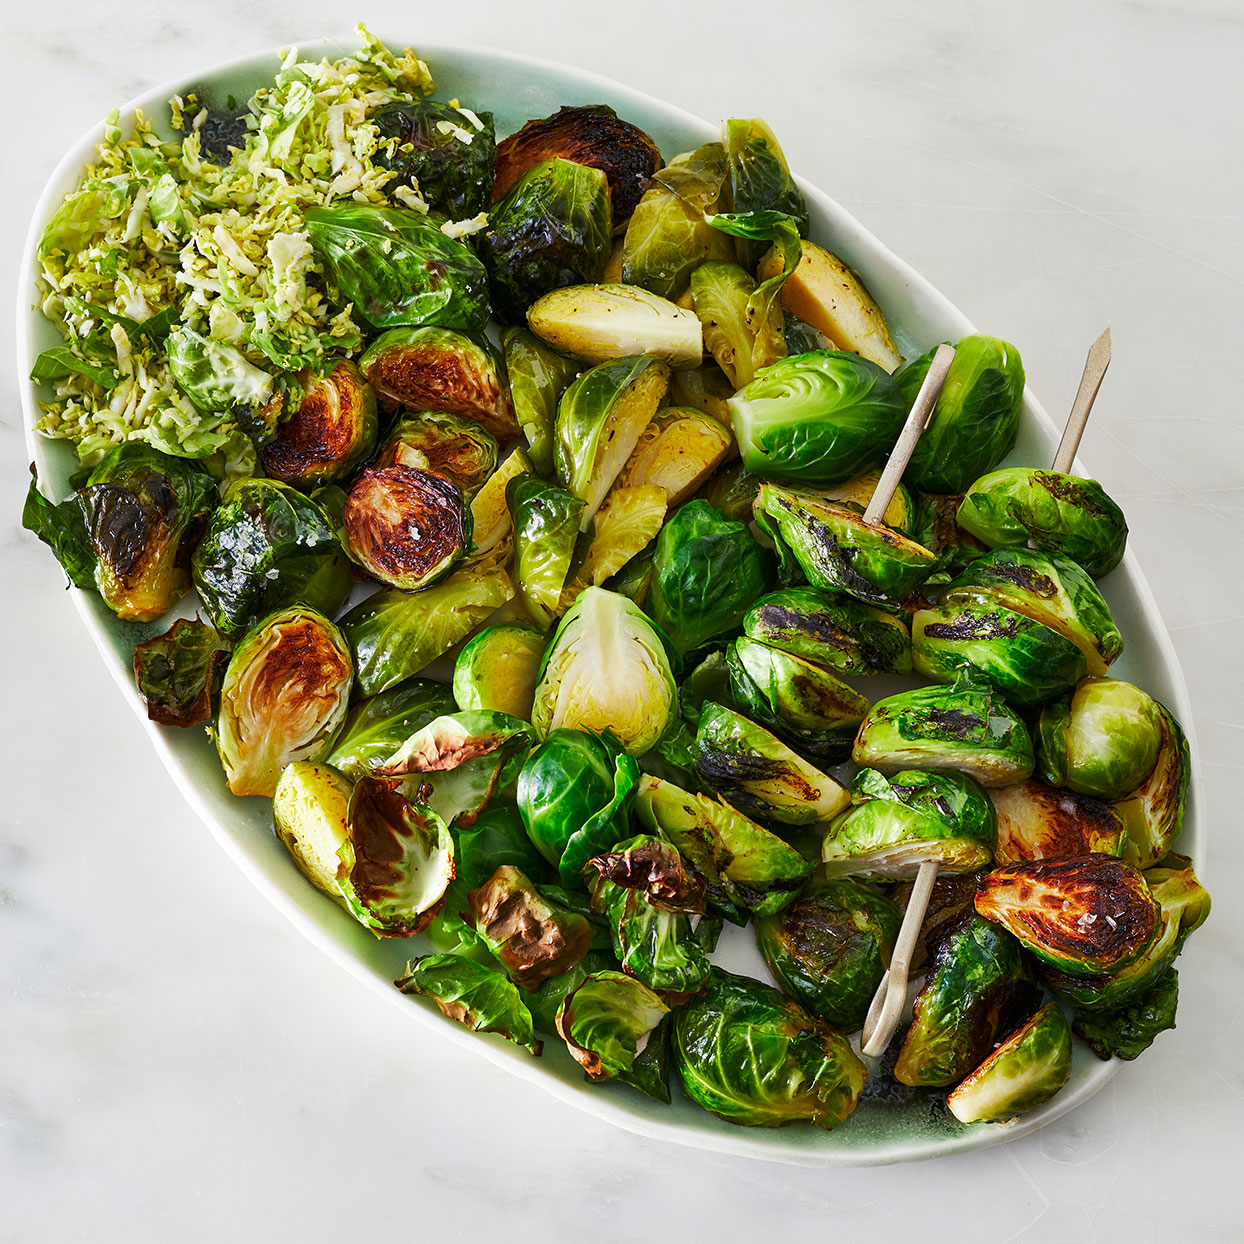 How-to-cook-brussels-sprouts